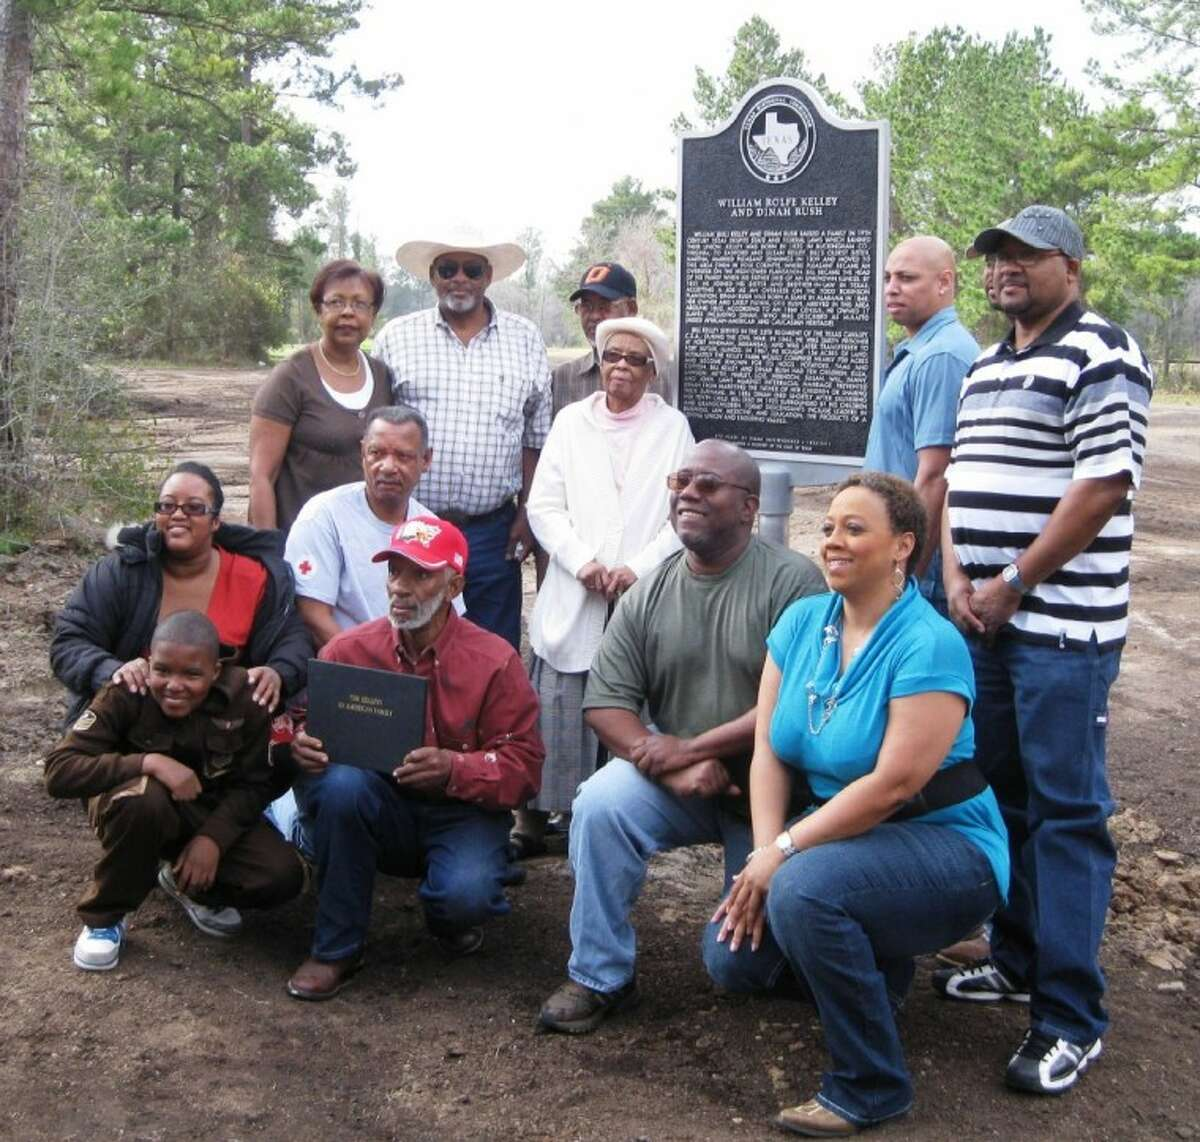 Descendents of the family pose in front of the historical cemetery marker commemorating the lives of William